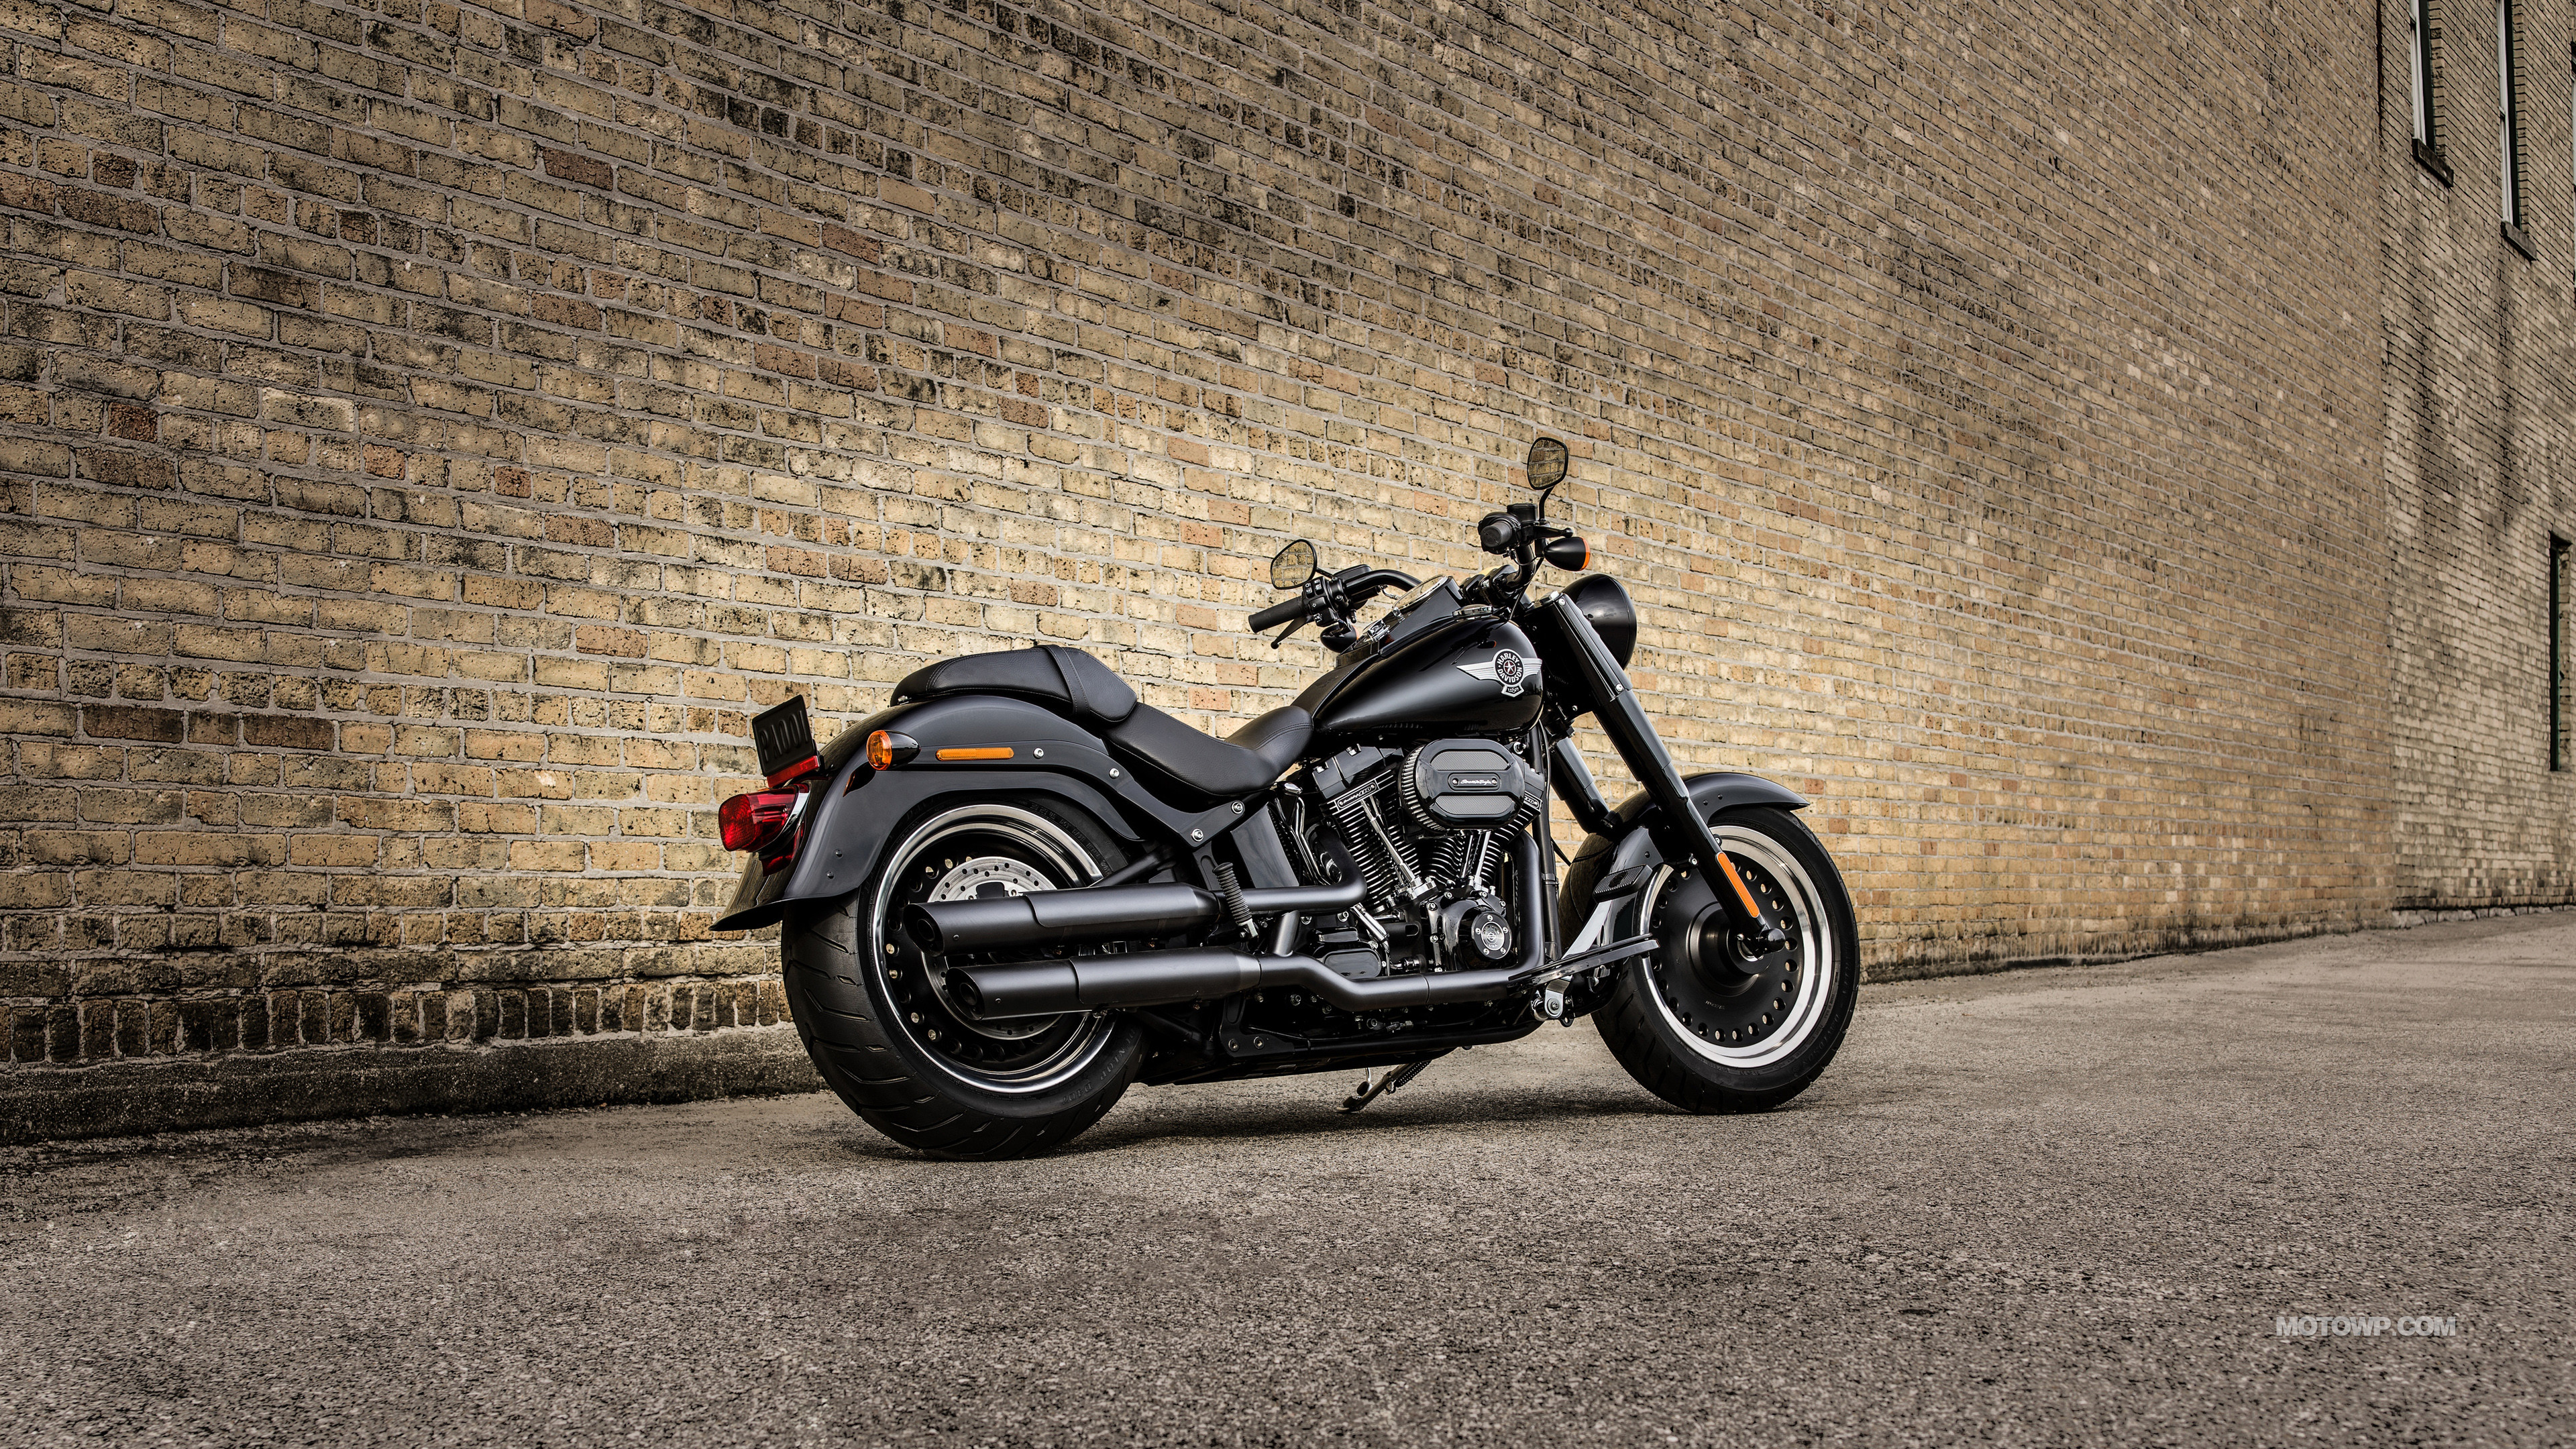 Harley Davidson Desktop Wallpaper 72 Images